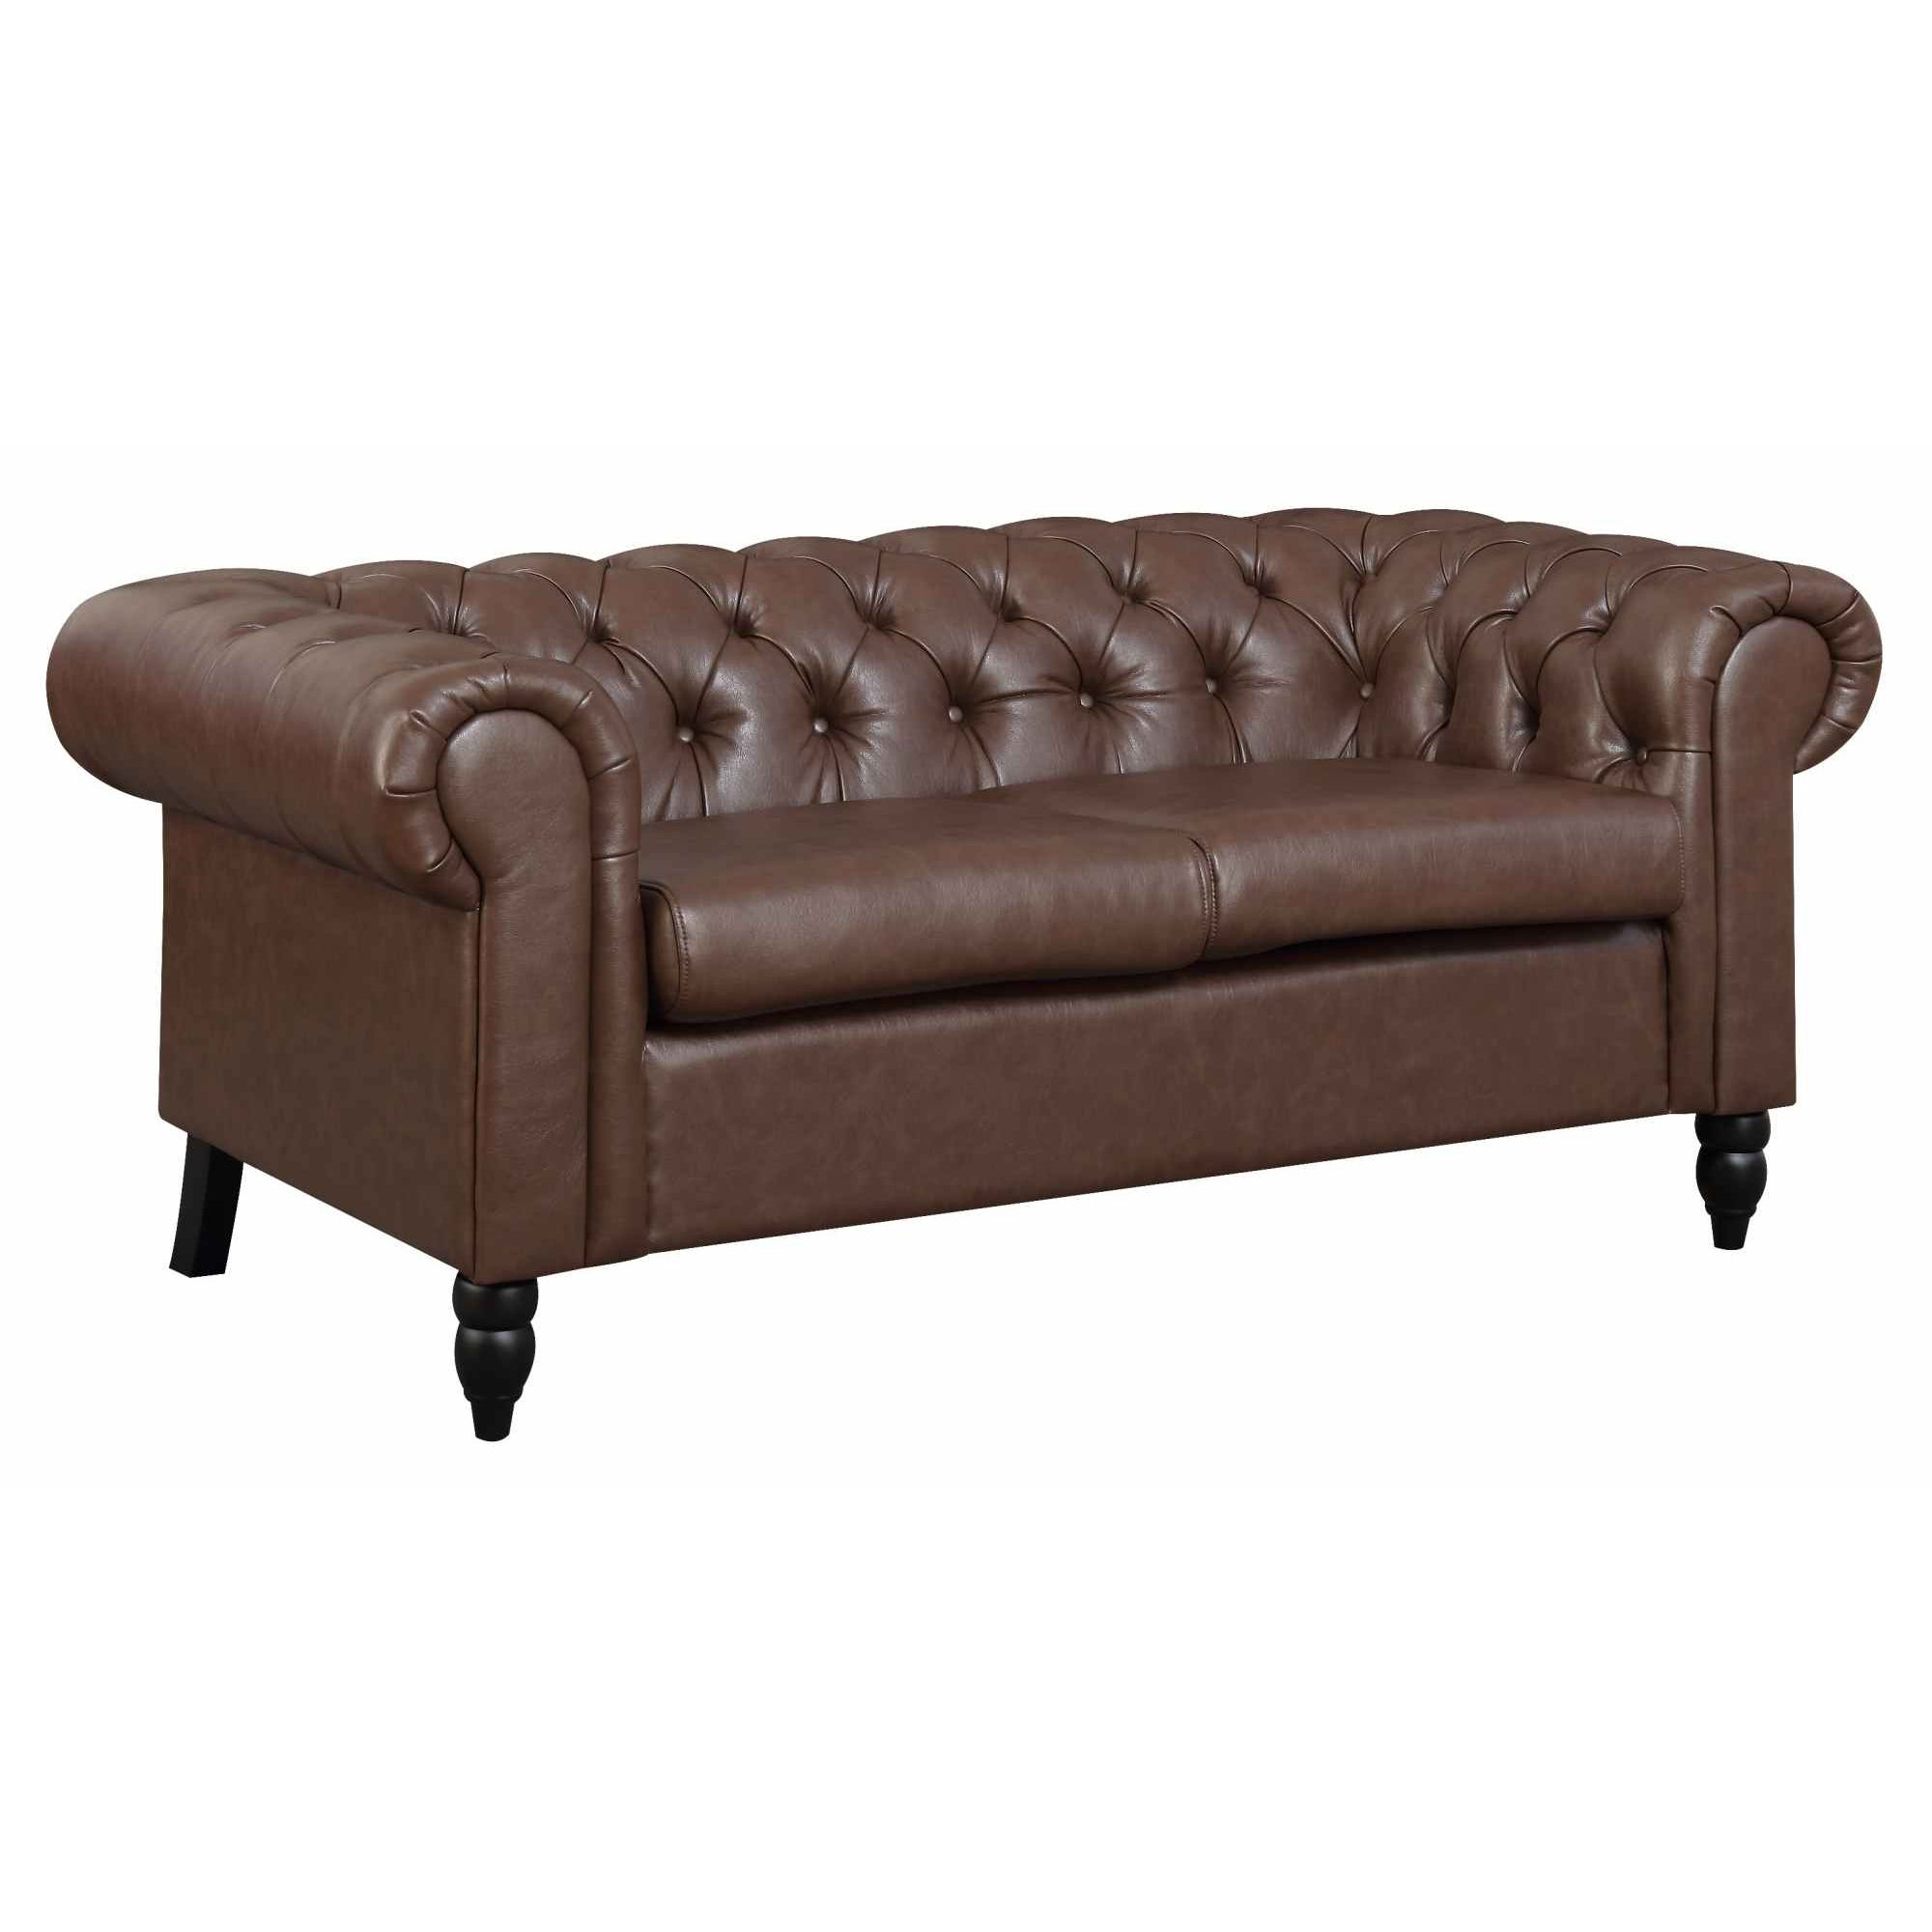 Deco in paris canape chesterfield 2 places marron for Chesterfield canape